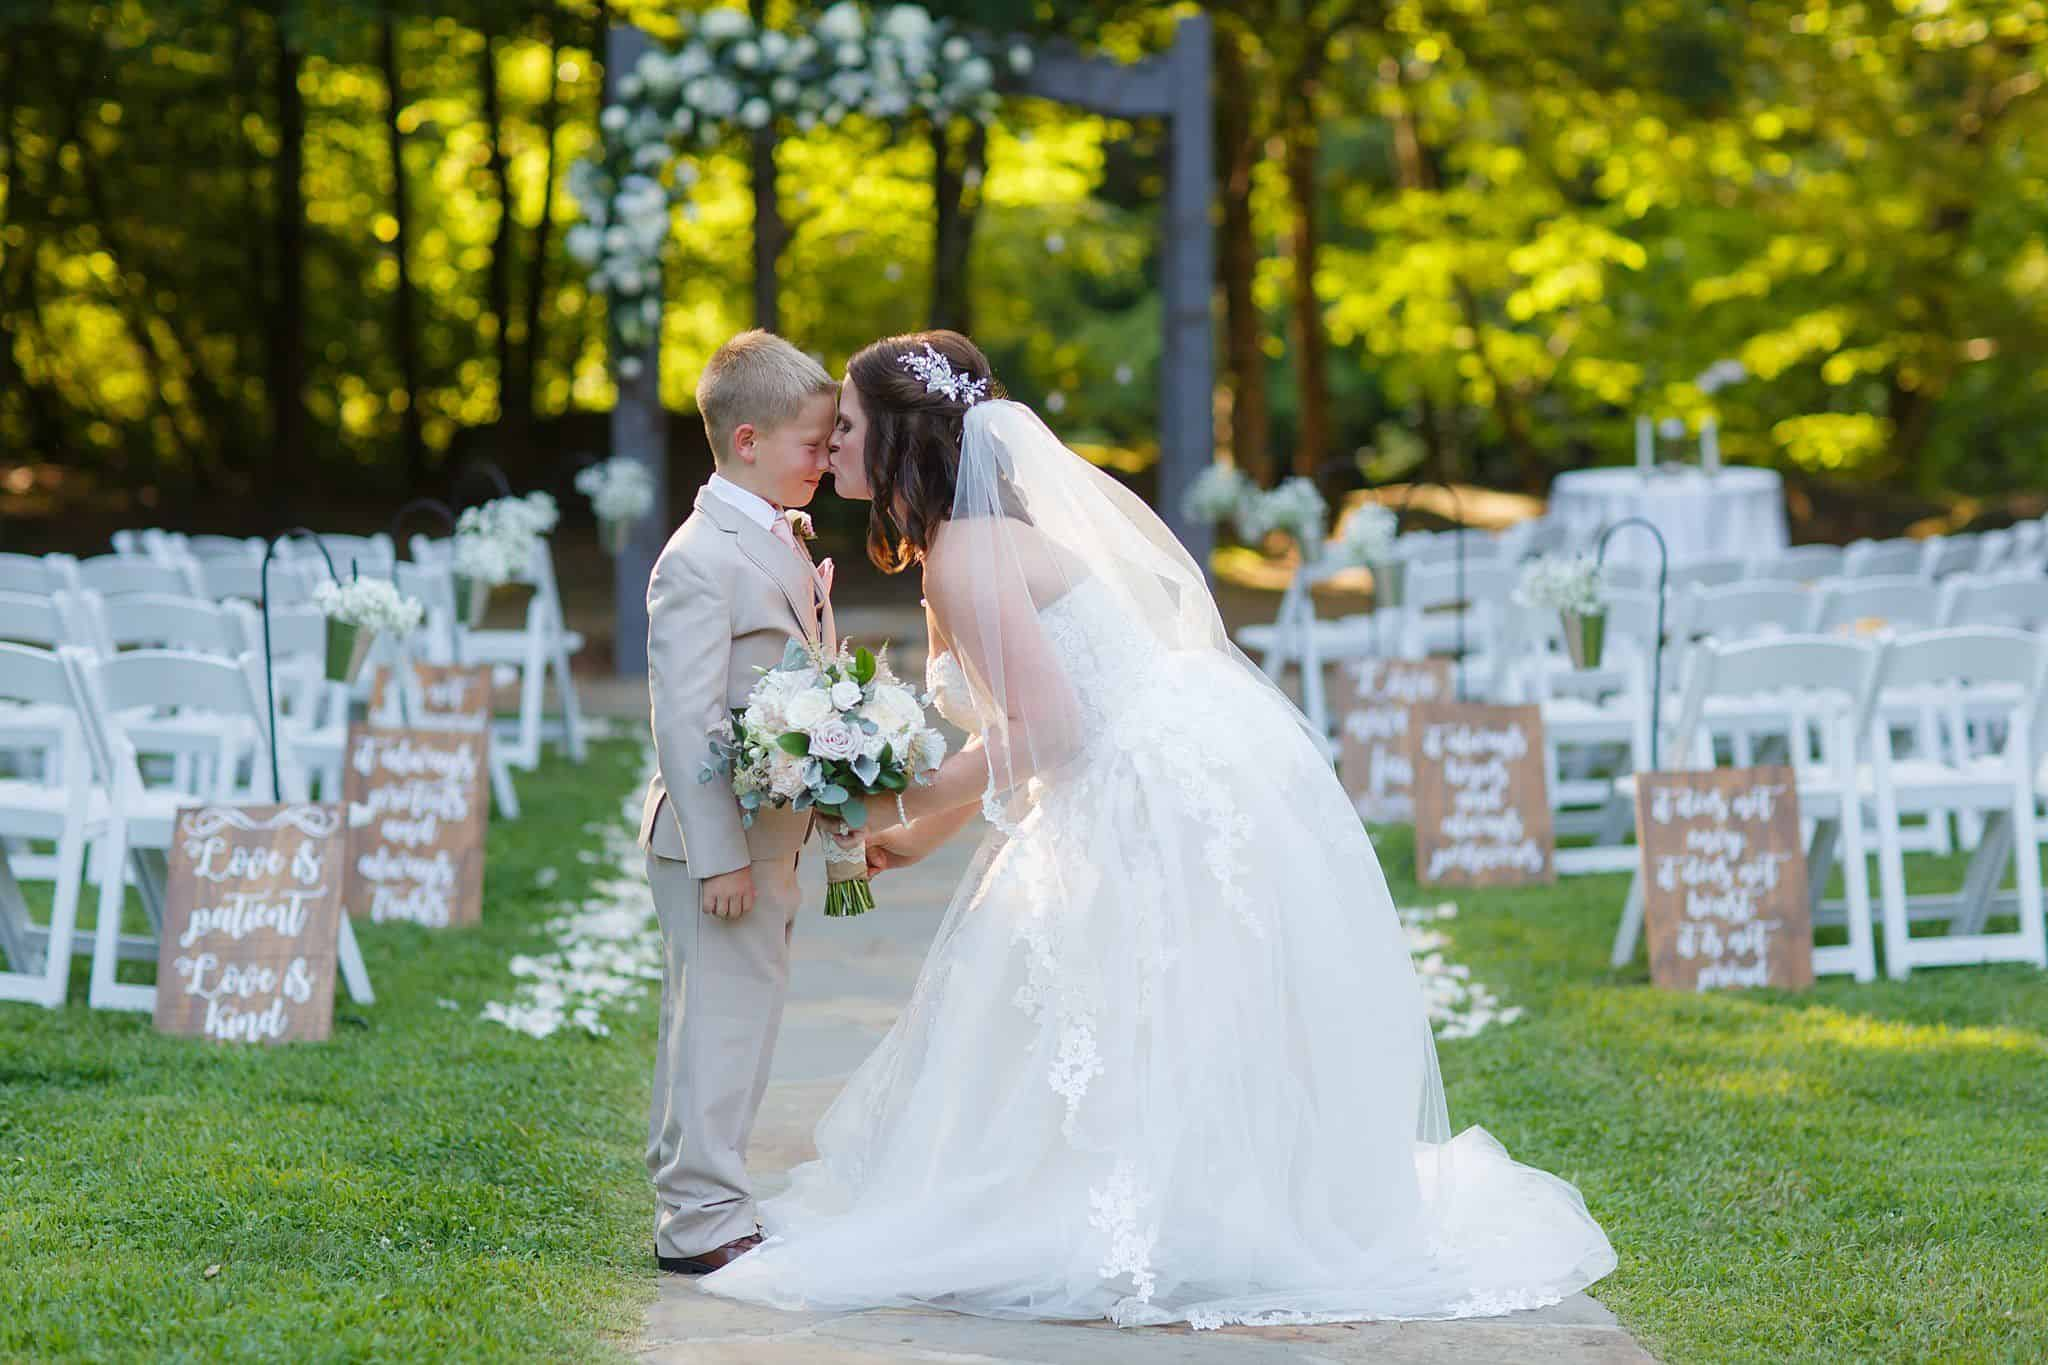 Bride kissing ringbearer on his nose holding her bouquet in front of the ceremony space for her wedding outdoors